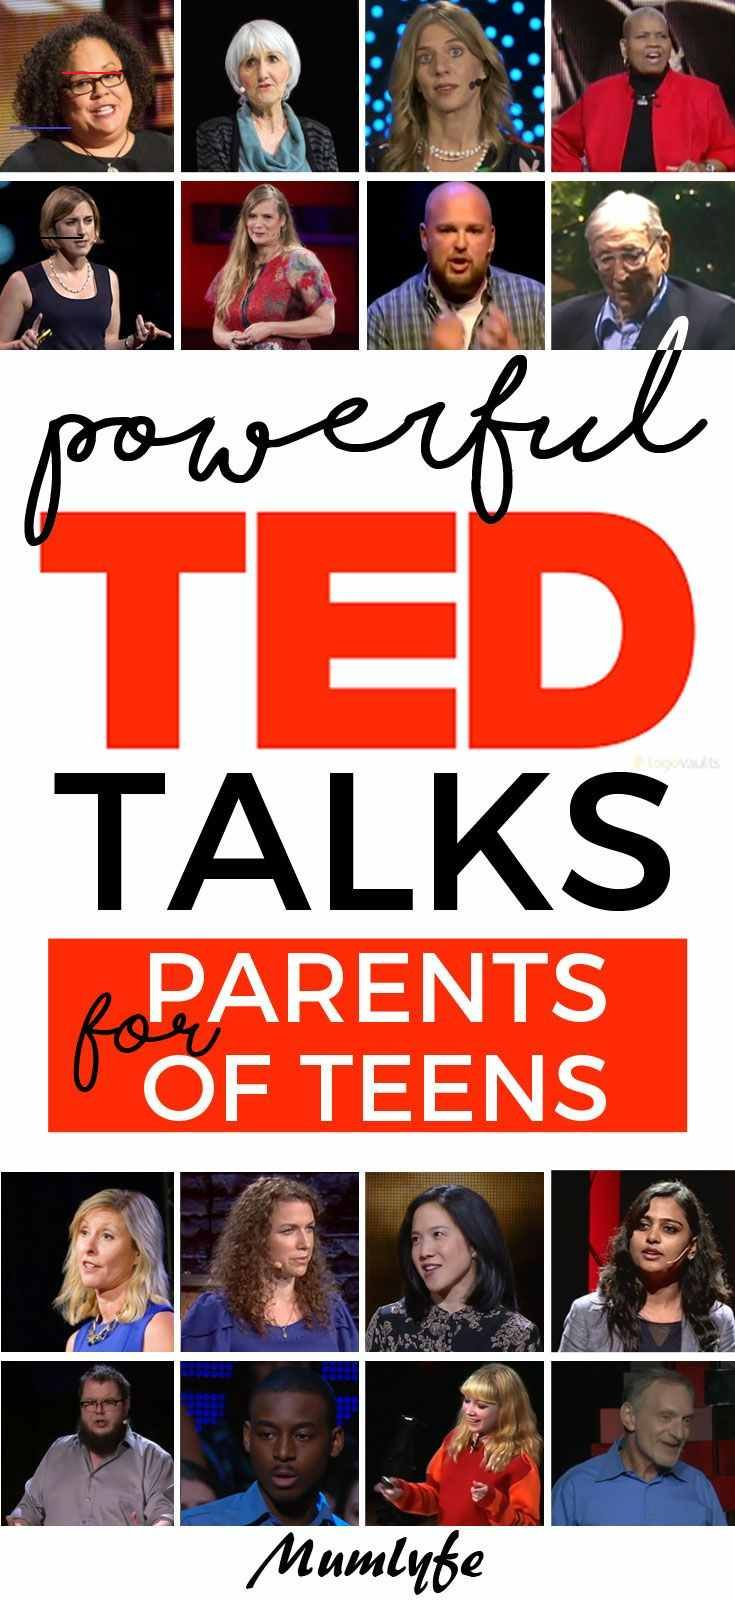 16 powerful TED talks for parenting teens | Mumlyfe TED Talks for parenting teens #tedtalks #parentingteens #parenting<br> Being a parent of teens is definitely not for the weak. These TED Talks for parenting teens all offer food for deep thought to guide and inspire us.